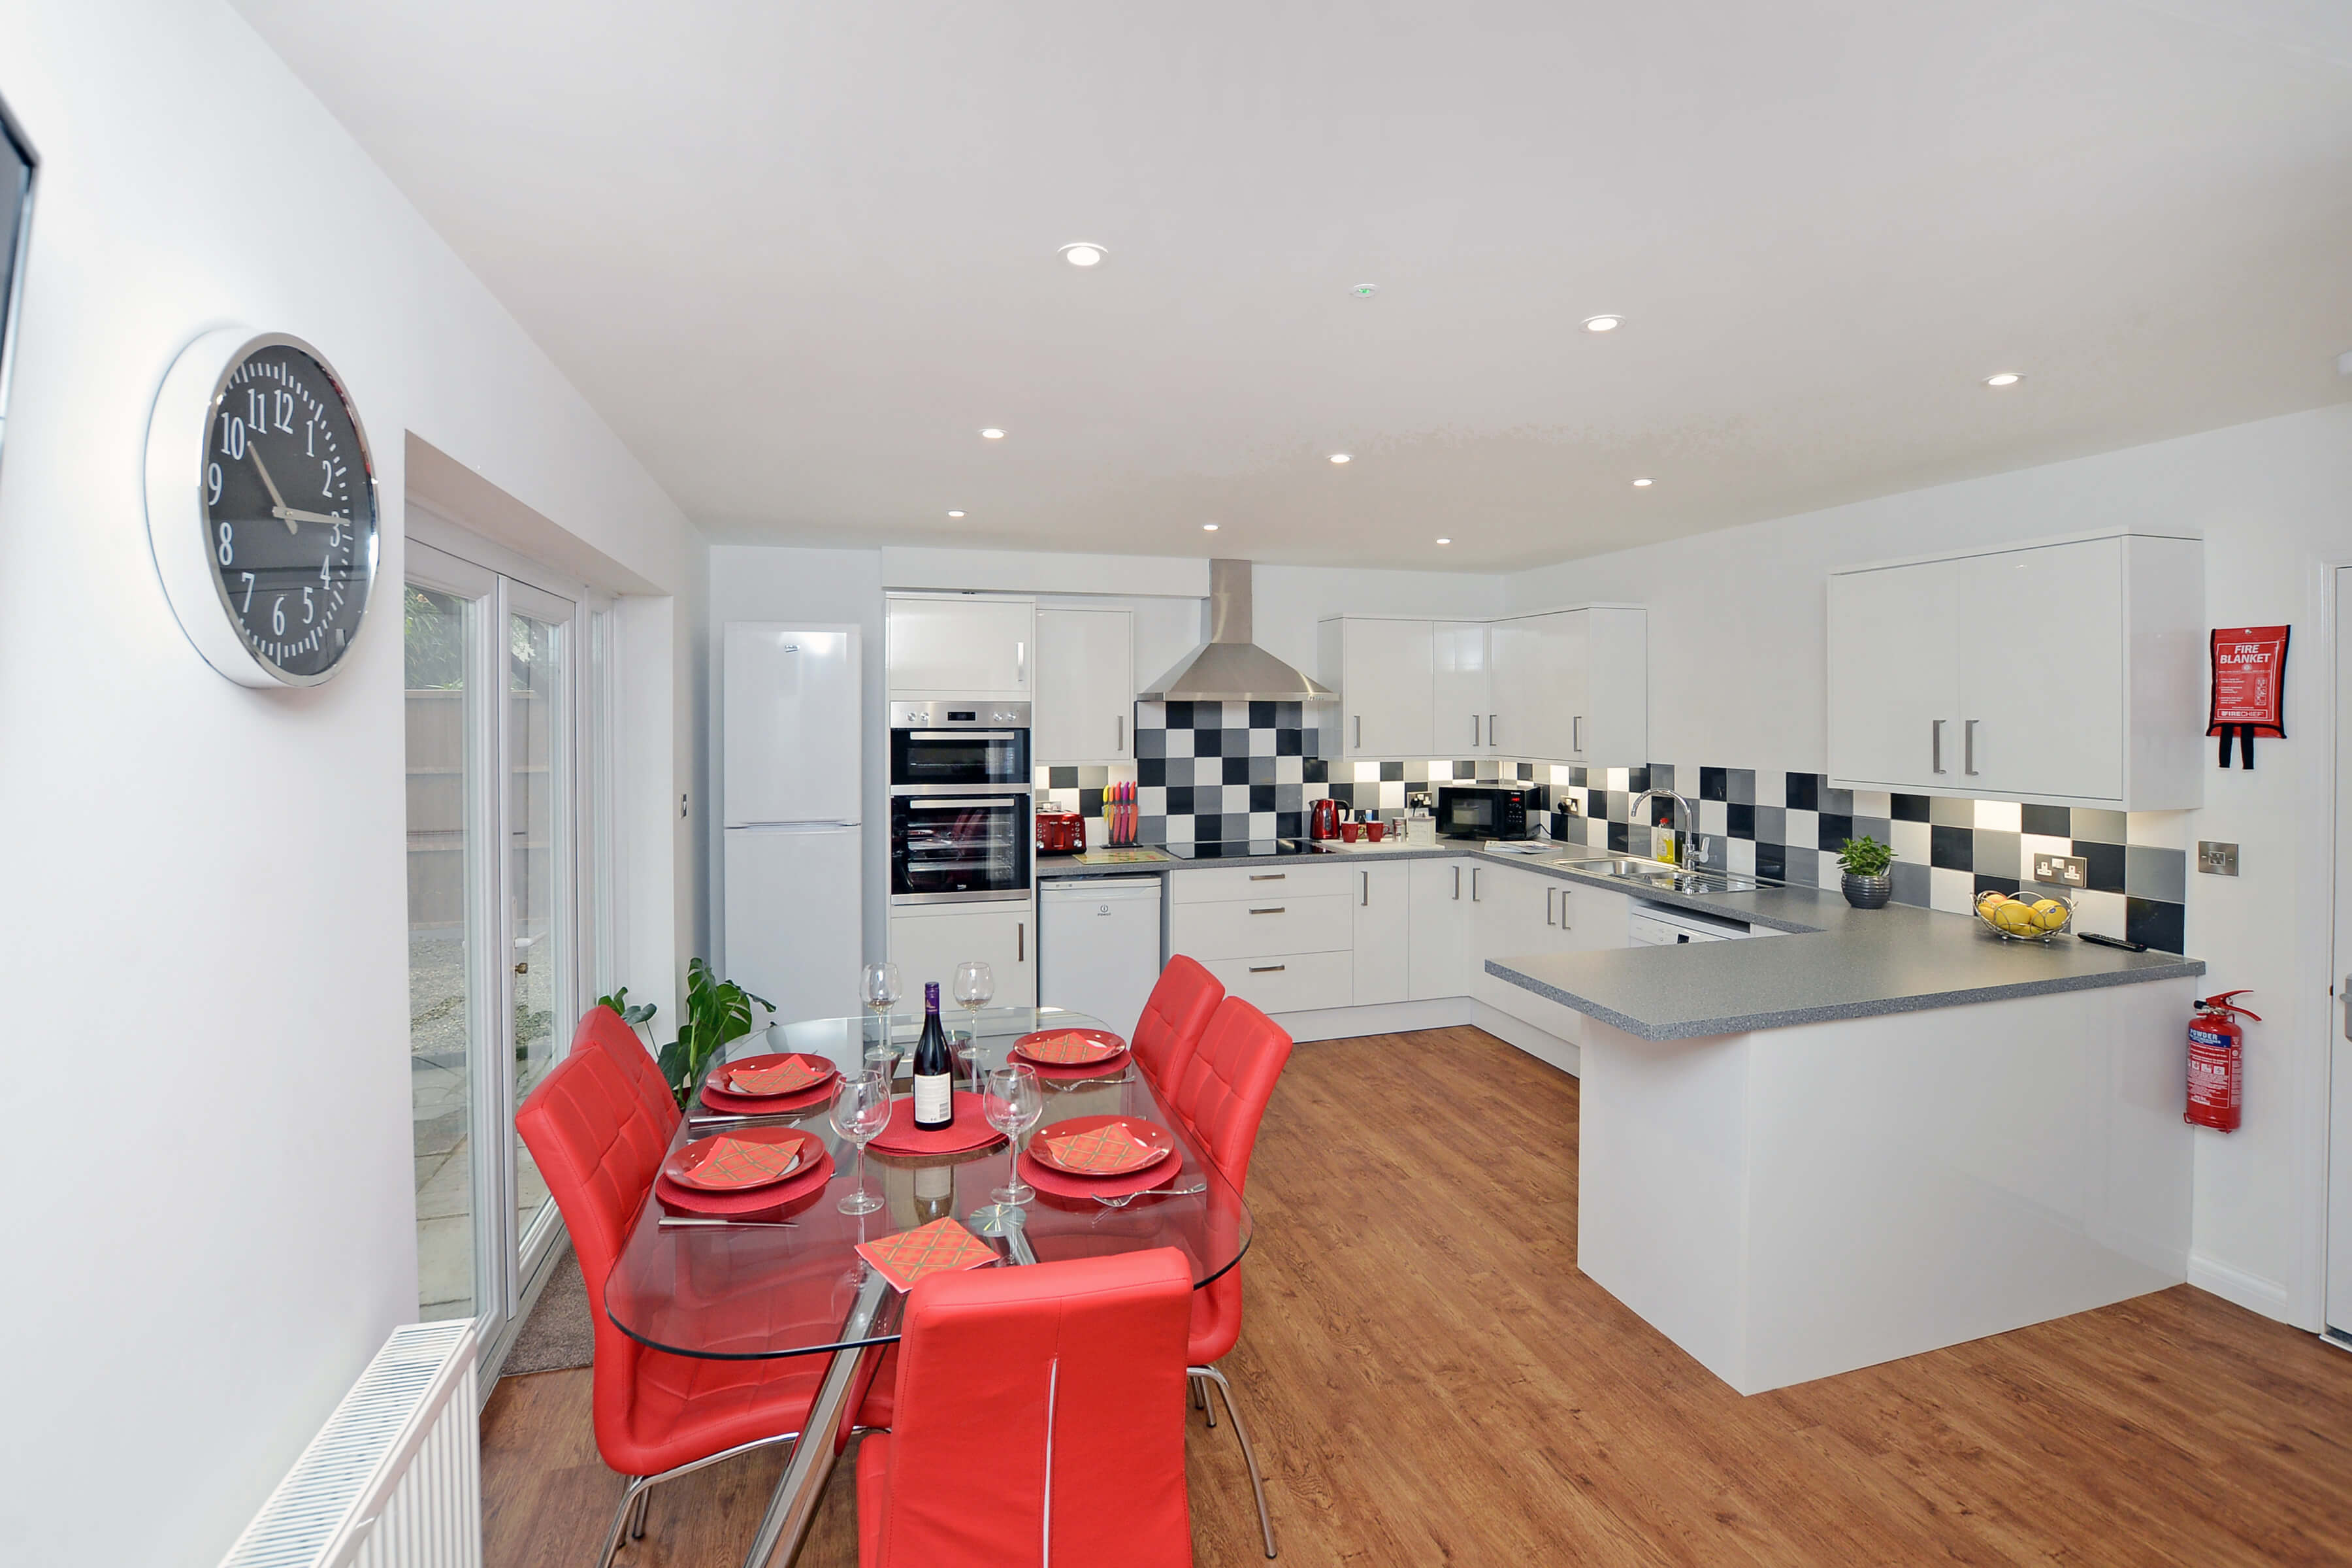 Modern, clean kitchen with white storage units and red chairs. Bottle of red wine on table.